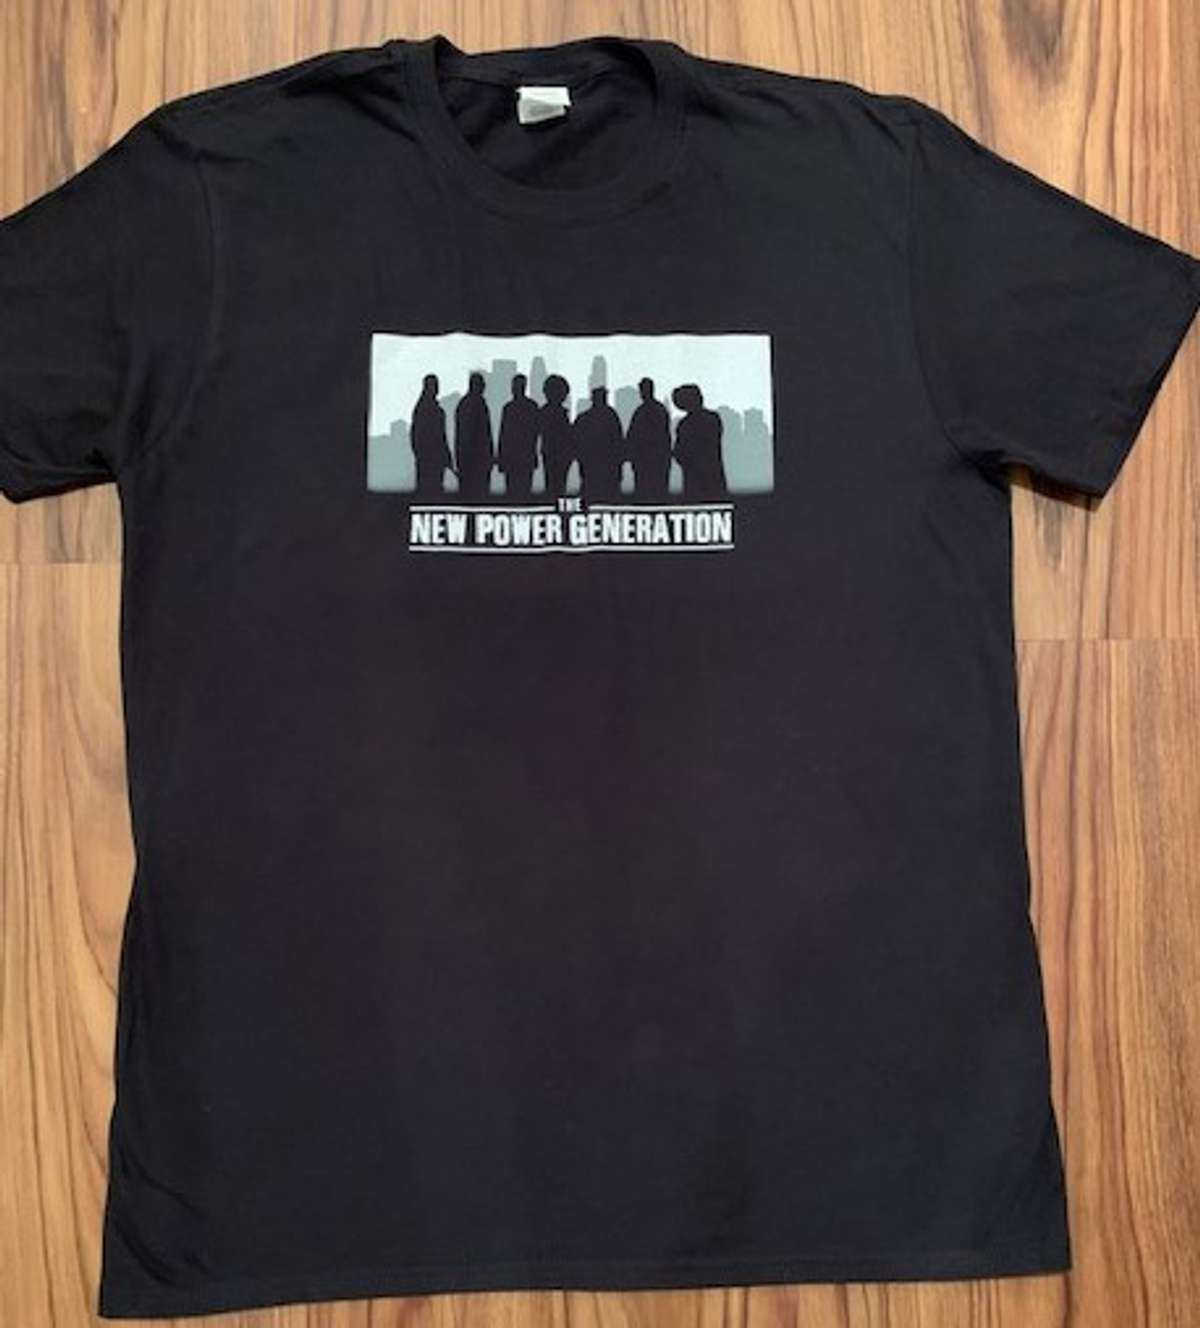 NPG European Tour 2019 Tee - Collectors Item - New Power Generation